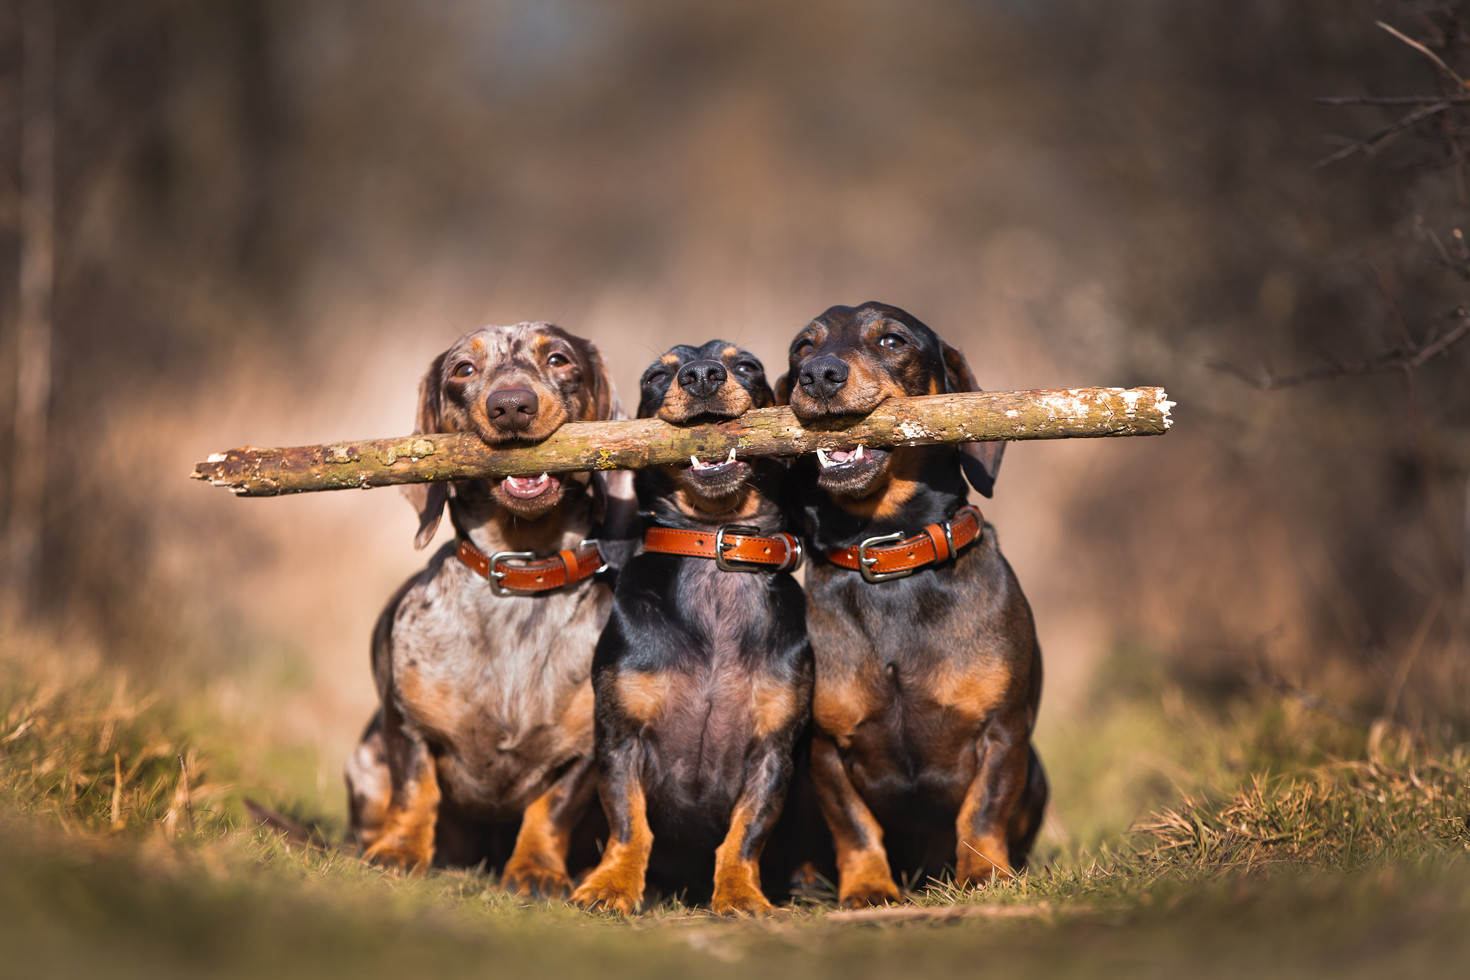 Sausages with Stick